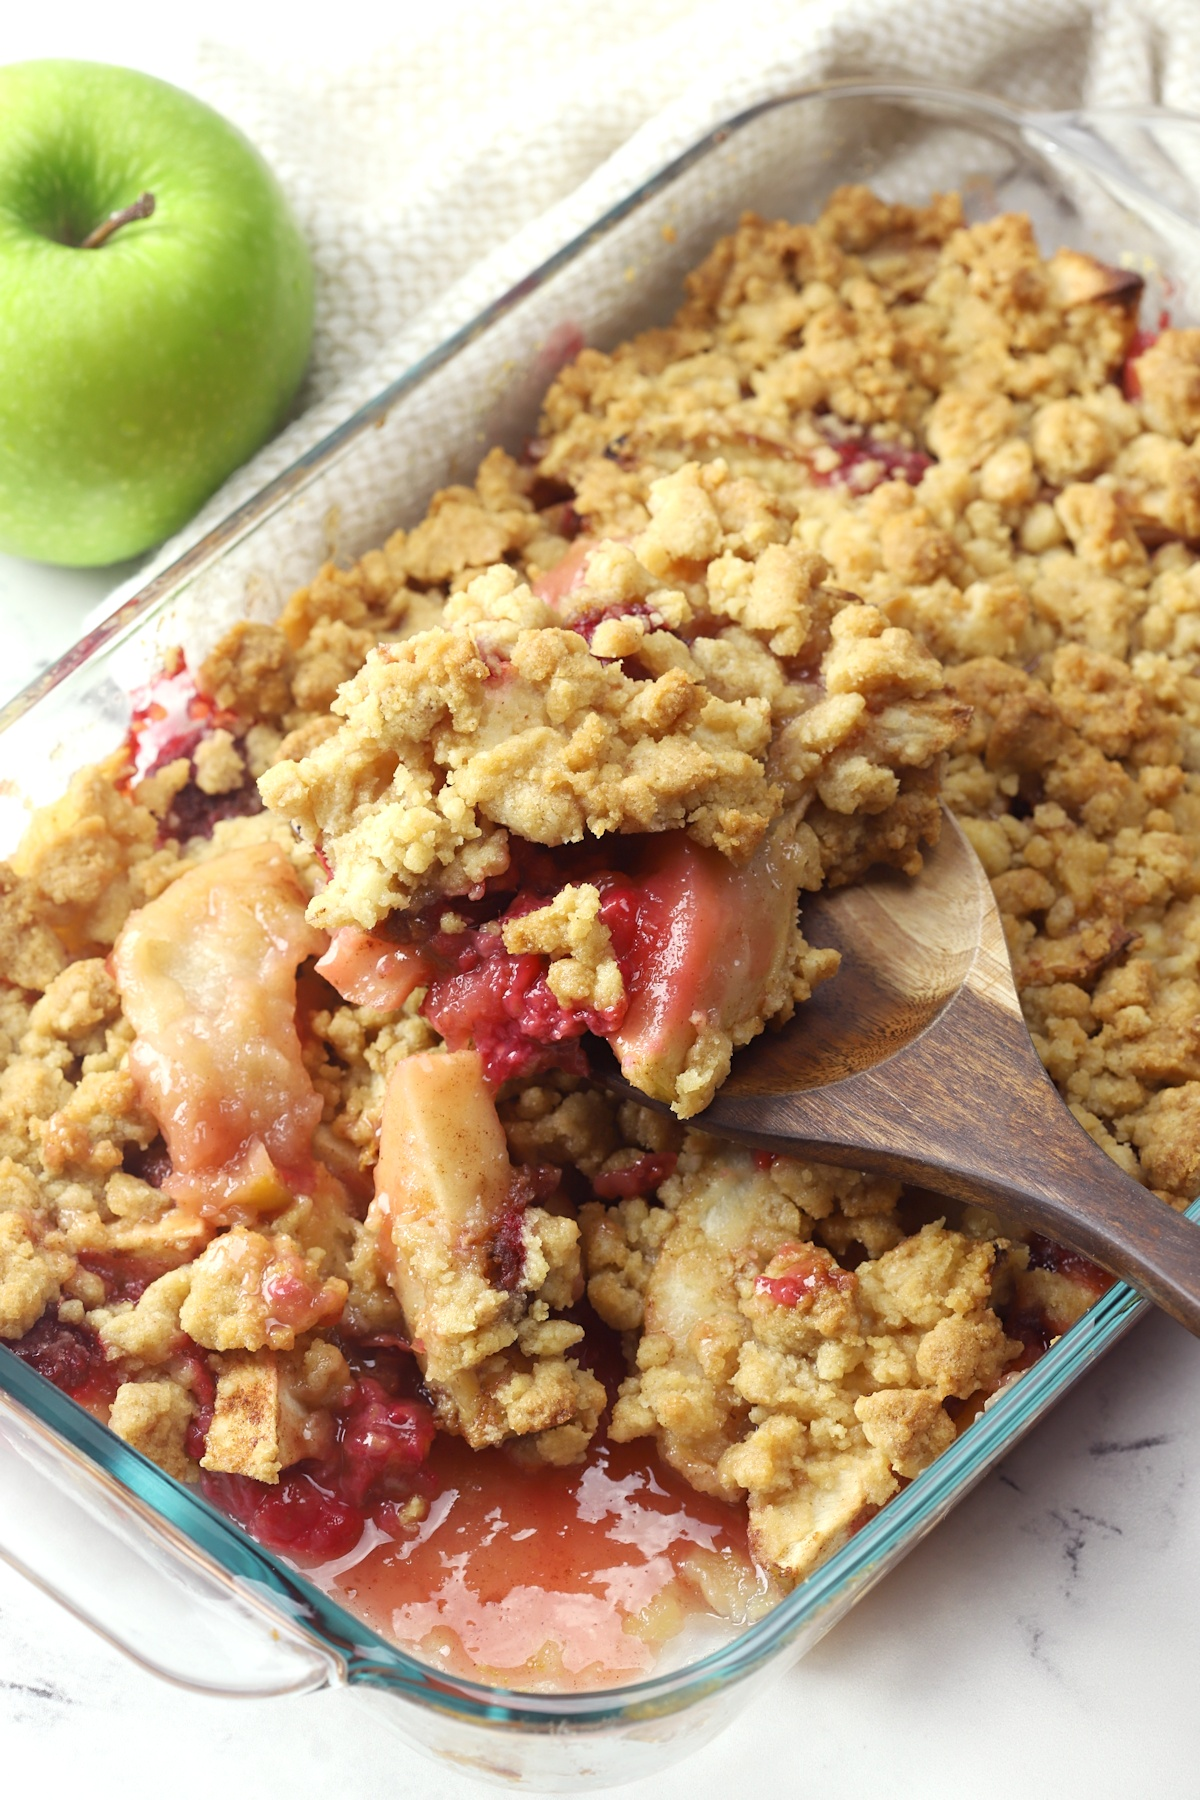 Wooden spoon scooping apple raspberry crumble from pan.